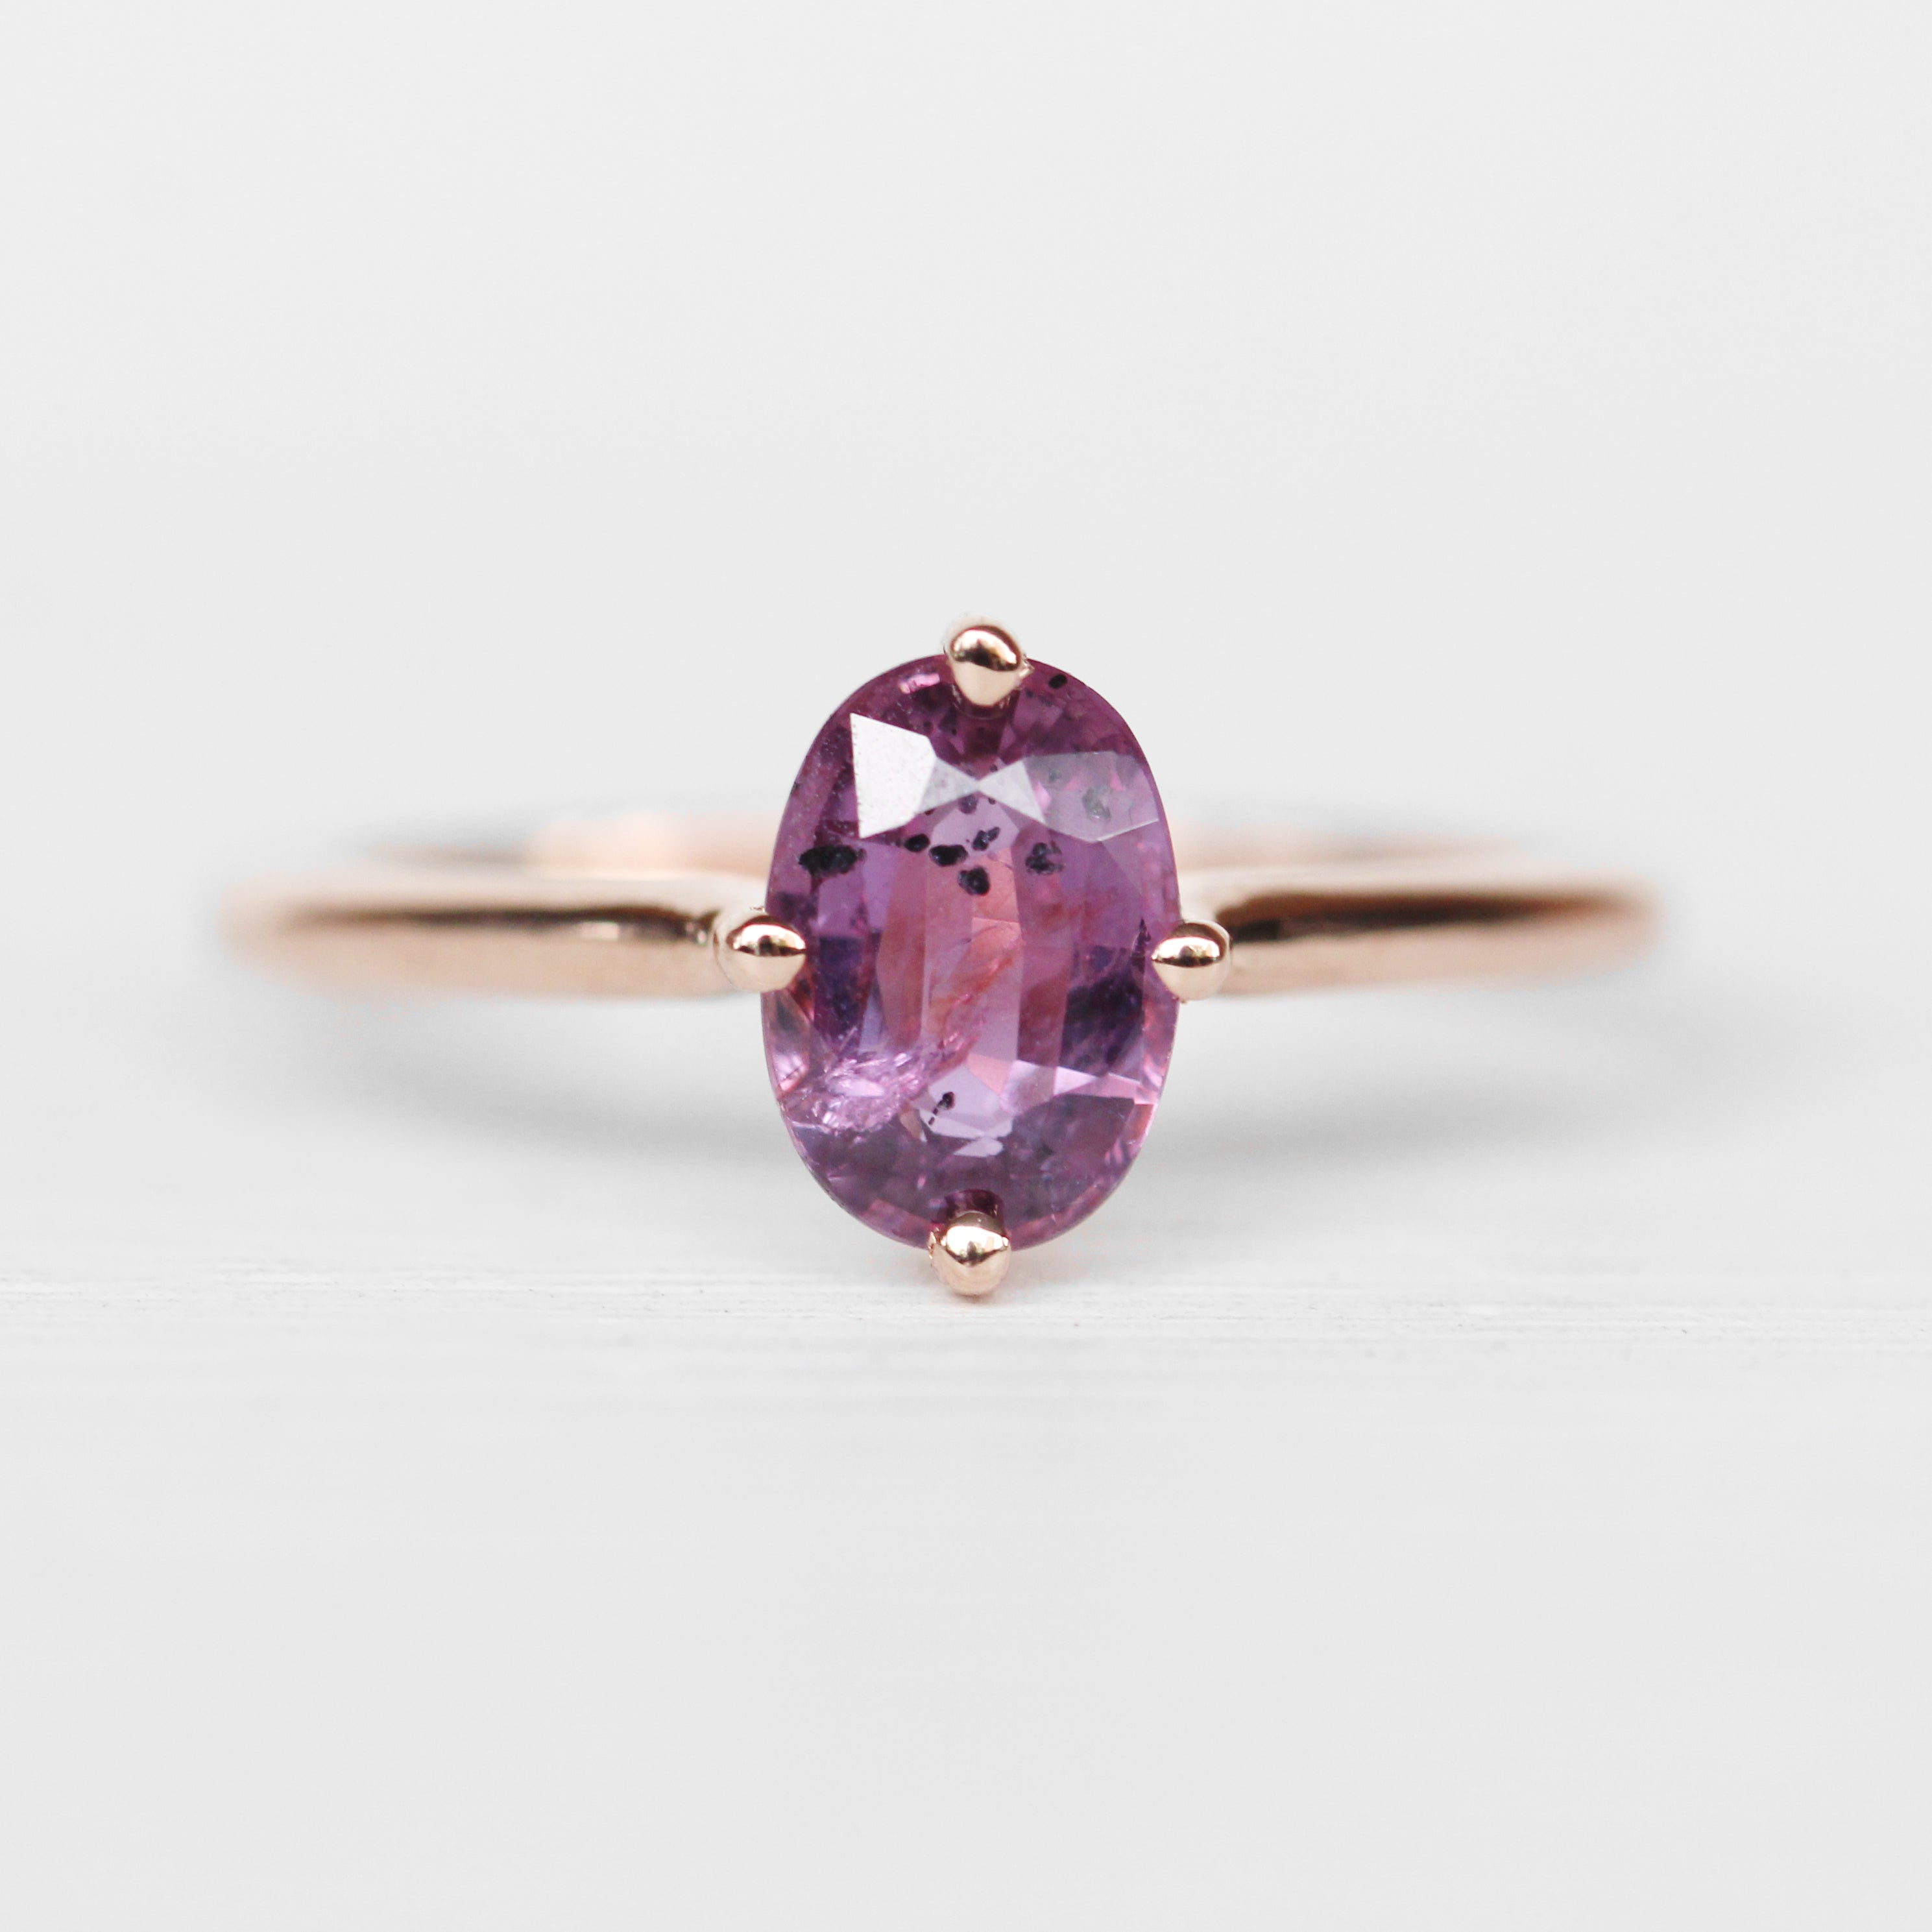 West Ring with a Magenta Sapphire in 10k Rose Gold - Ready to Size and Ship